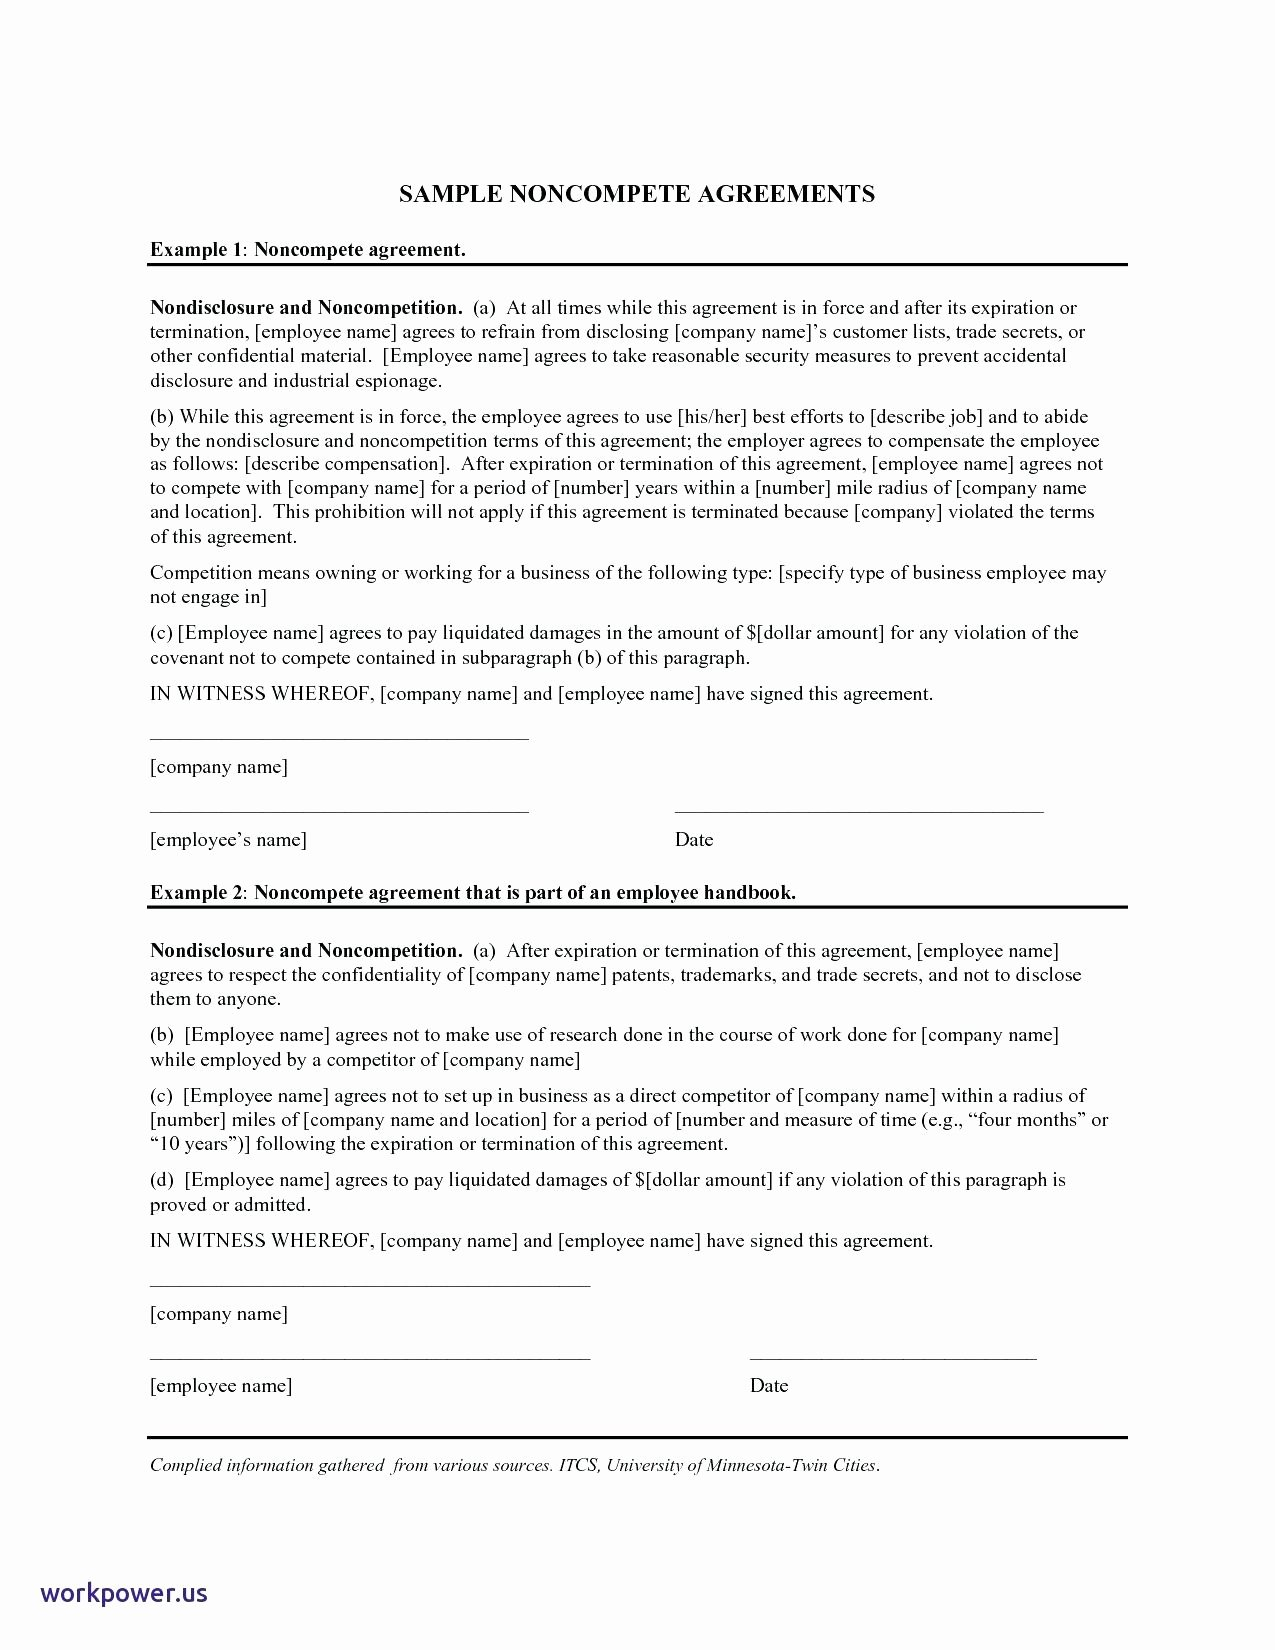 Subcontractor Non Compete Agreement Template Inspirational Non Pete Agreement Template Staruptalent